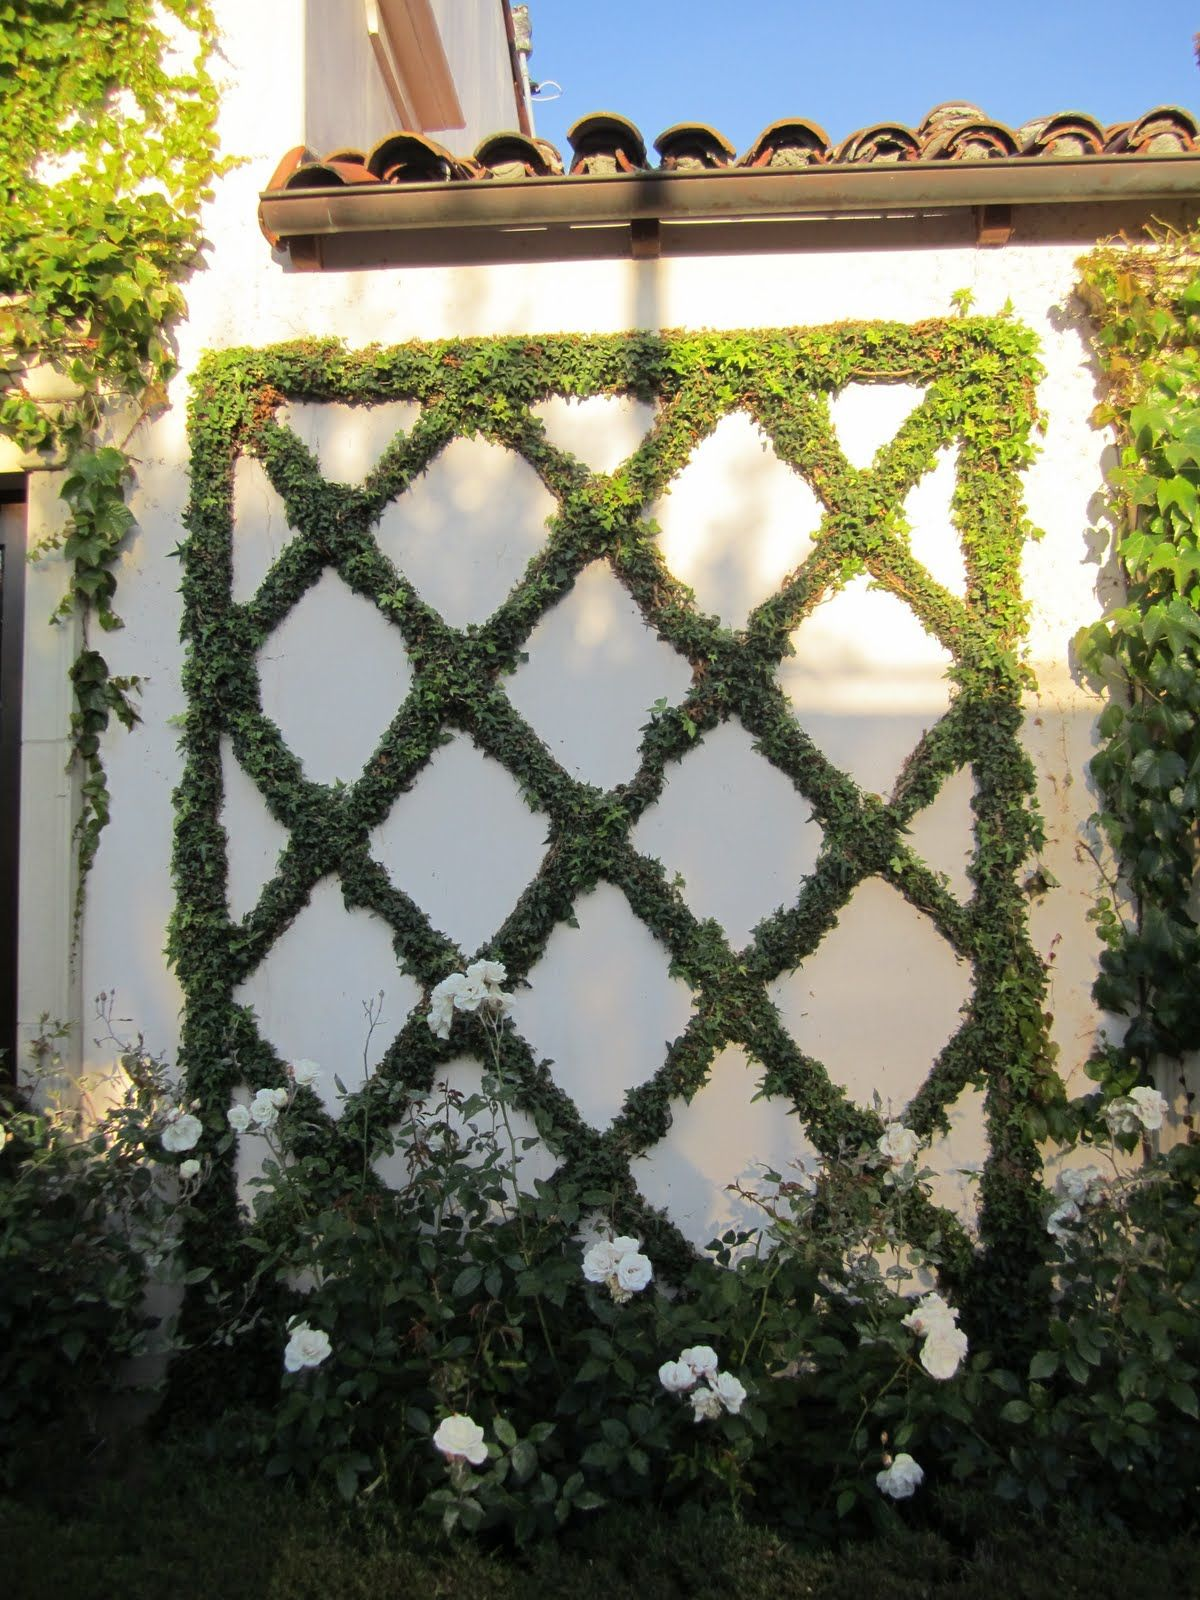 how to grow star jasmine on a fence